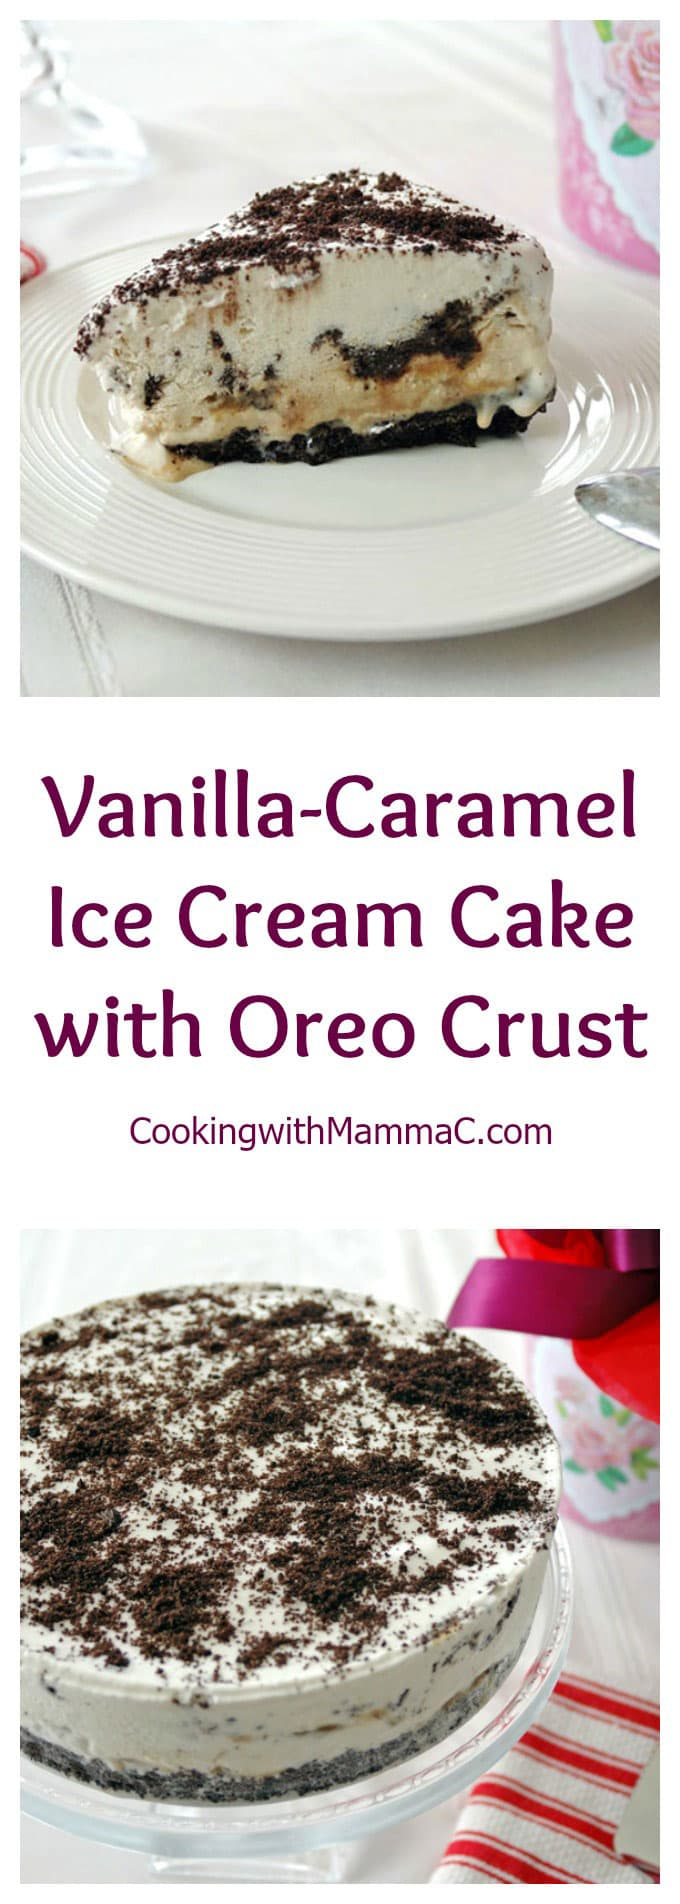 Vanilla Caramel Ice Cream Cake With Oreo Crust